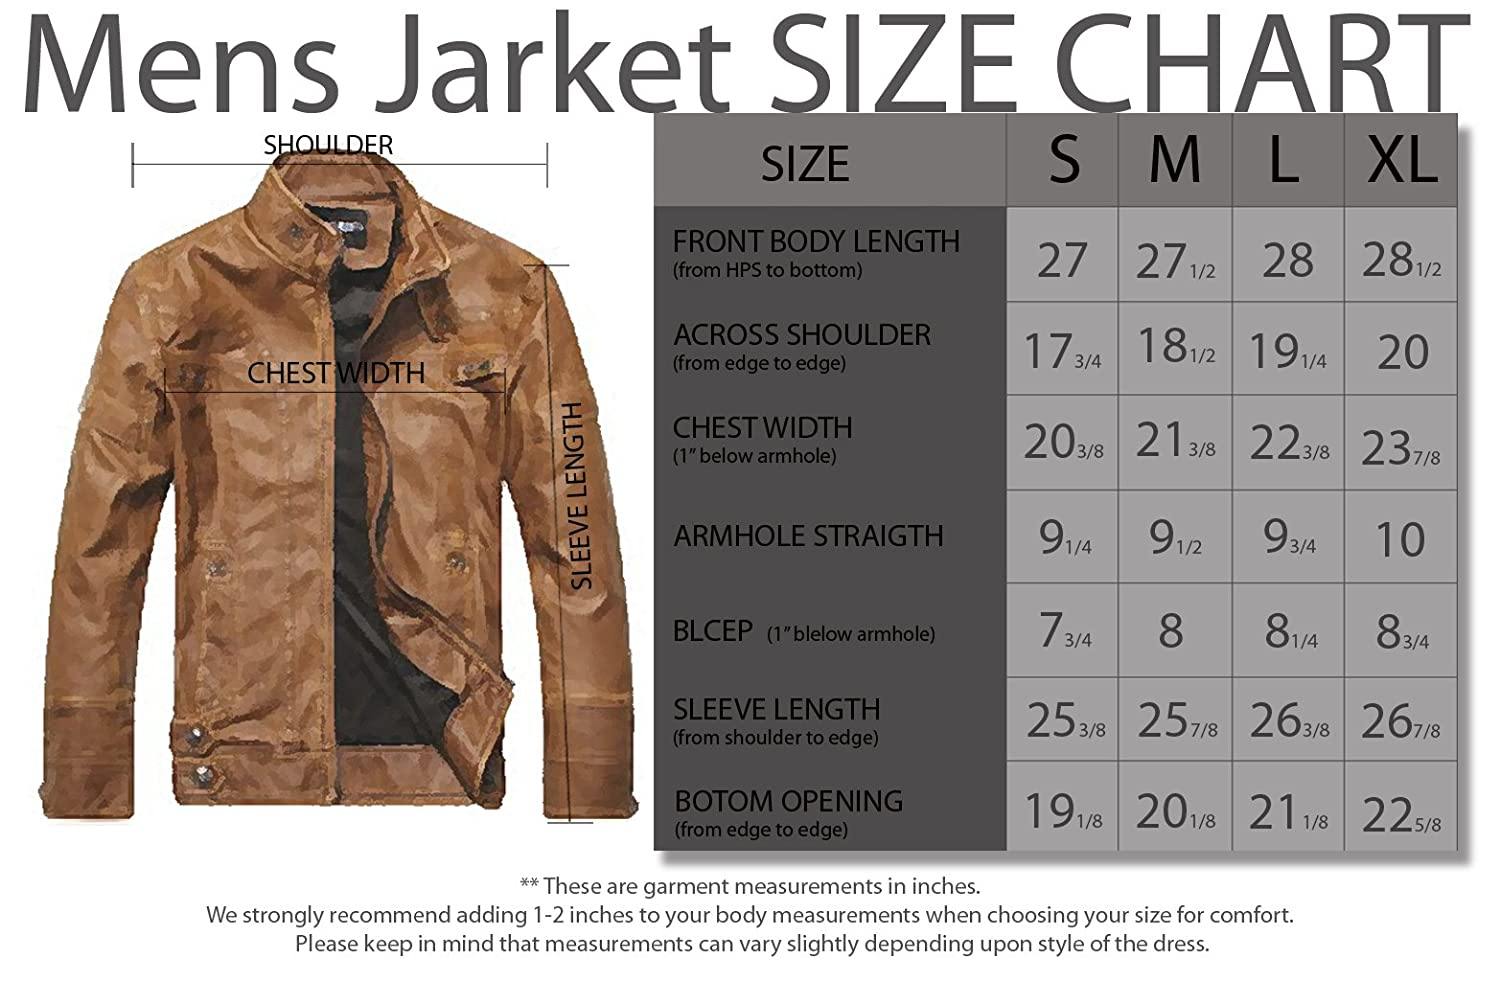 b679da51d URBAN K Men's Faux Leather Jacket with Quilted Pattern ¡¦